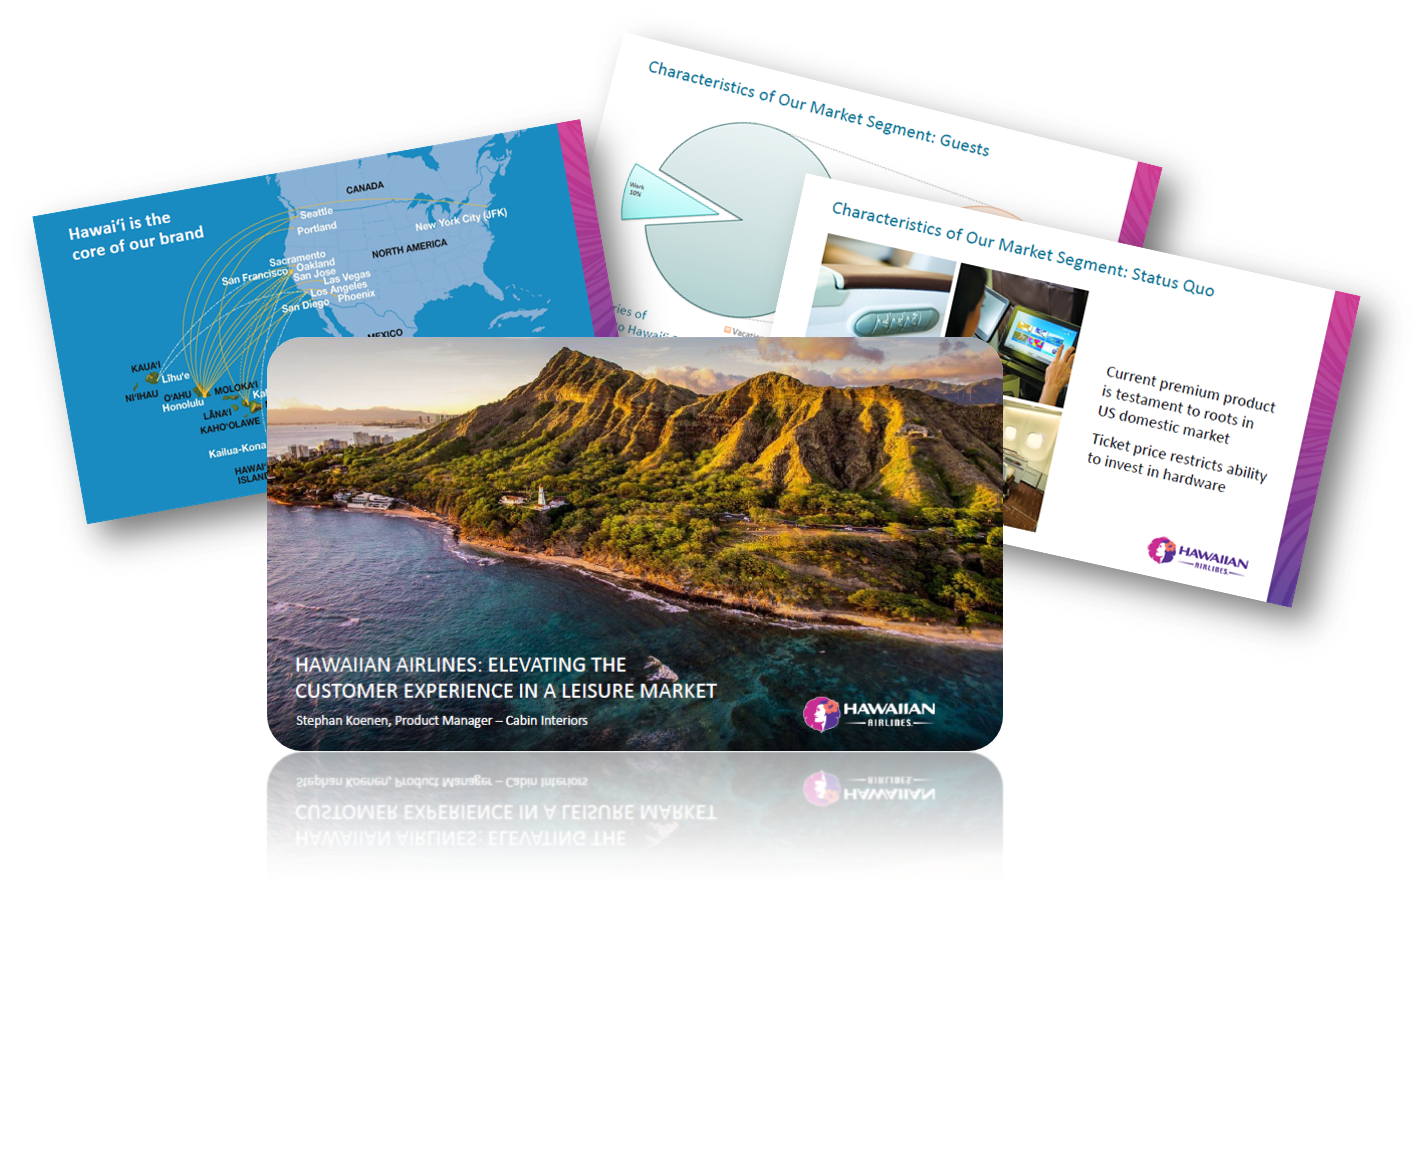 Hawaiian Airlines: Elevating the customer experience in a leisure market